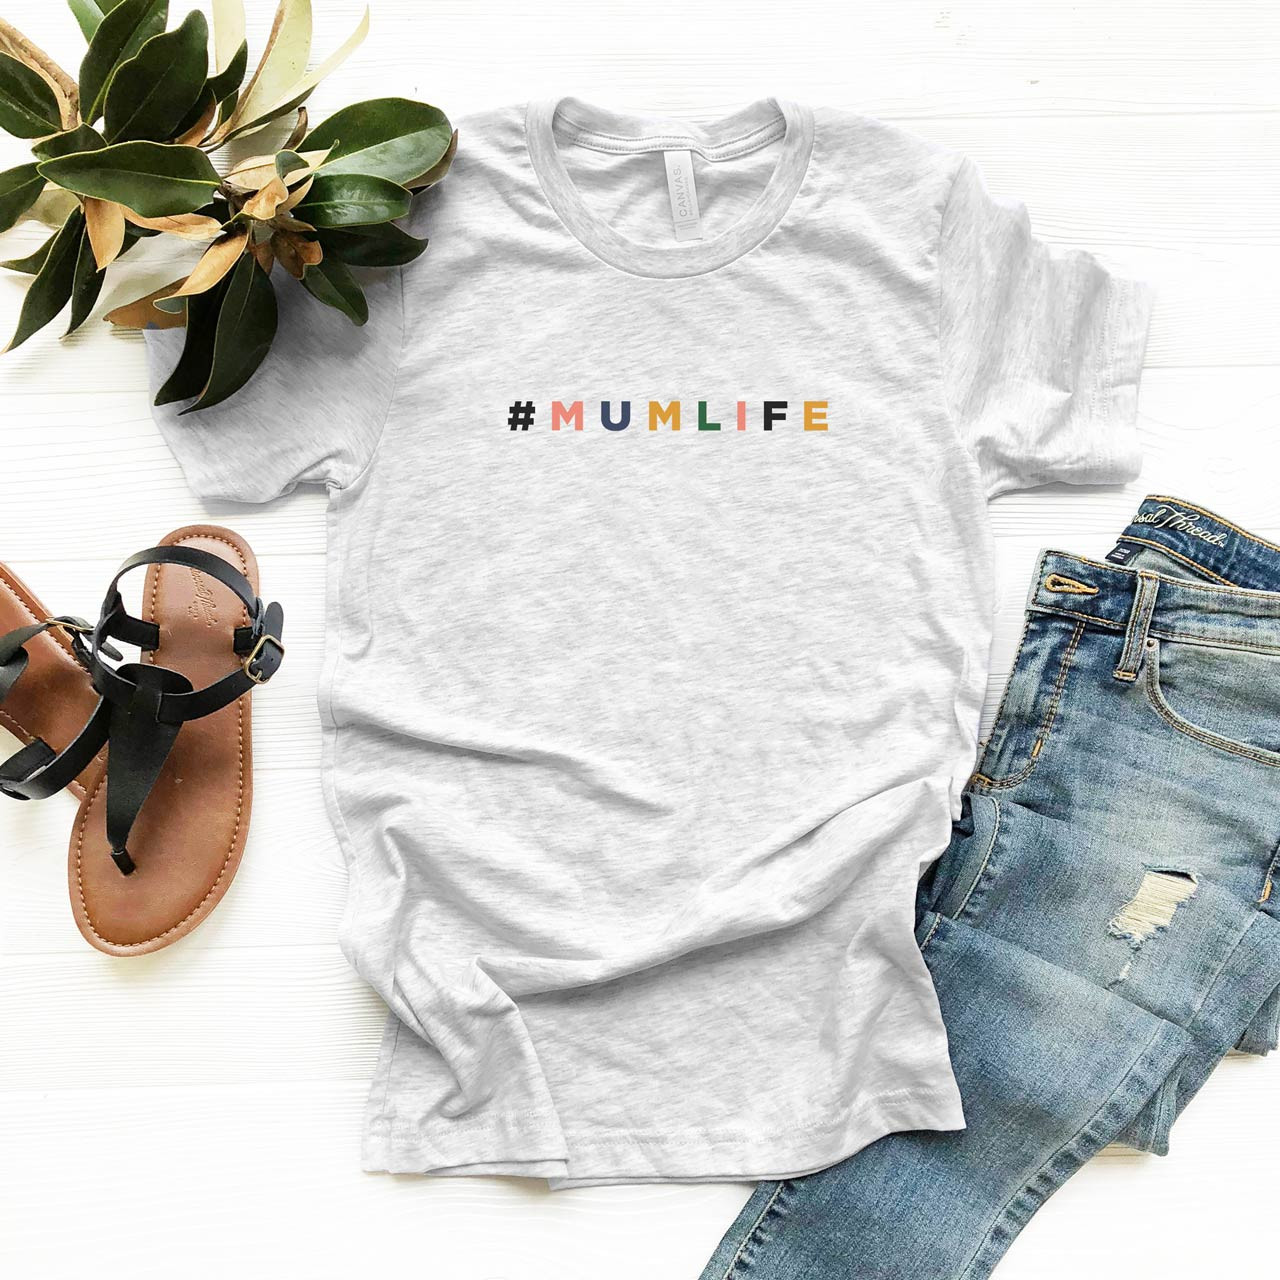 #MUMLIFE Vintage T-Shirt (Color on Light Gray Fleck) from The Printed Home